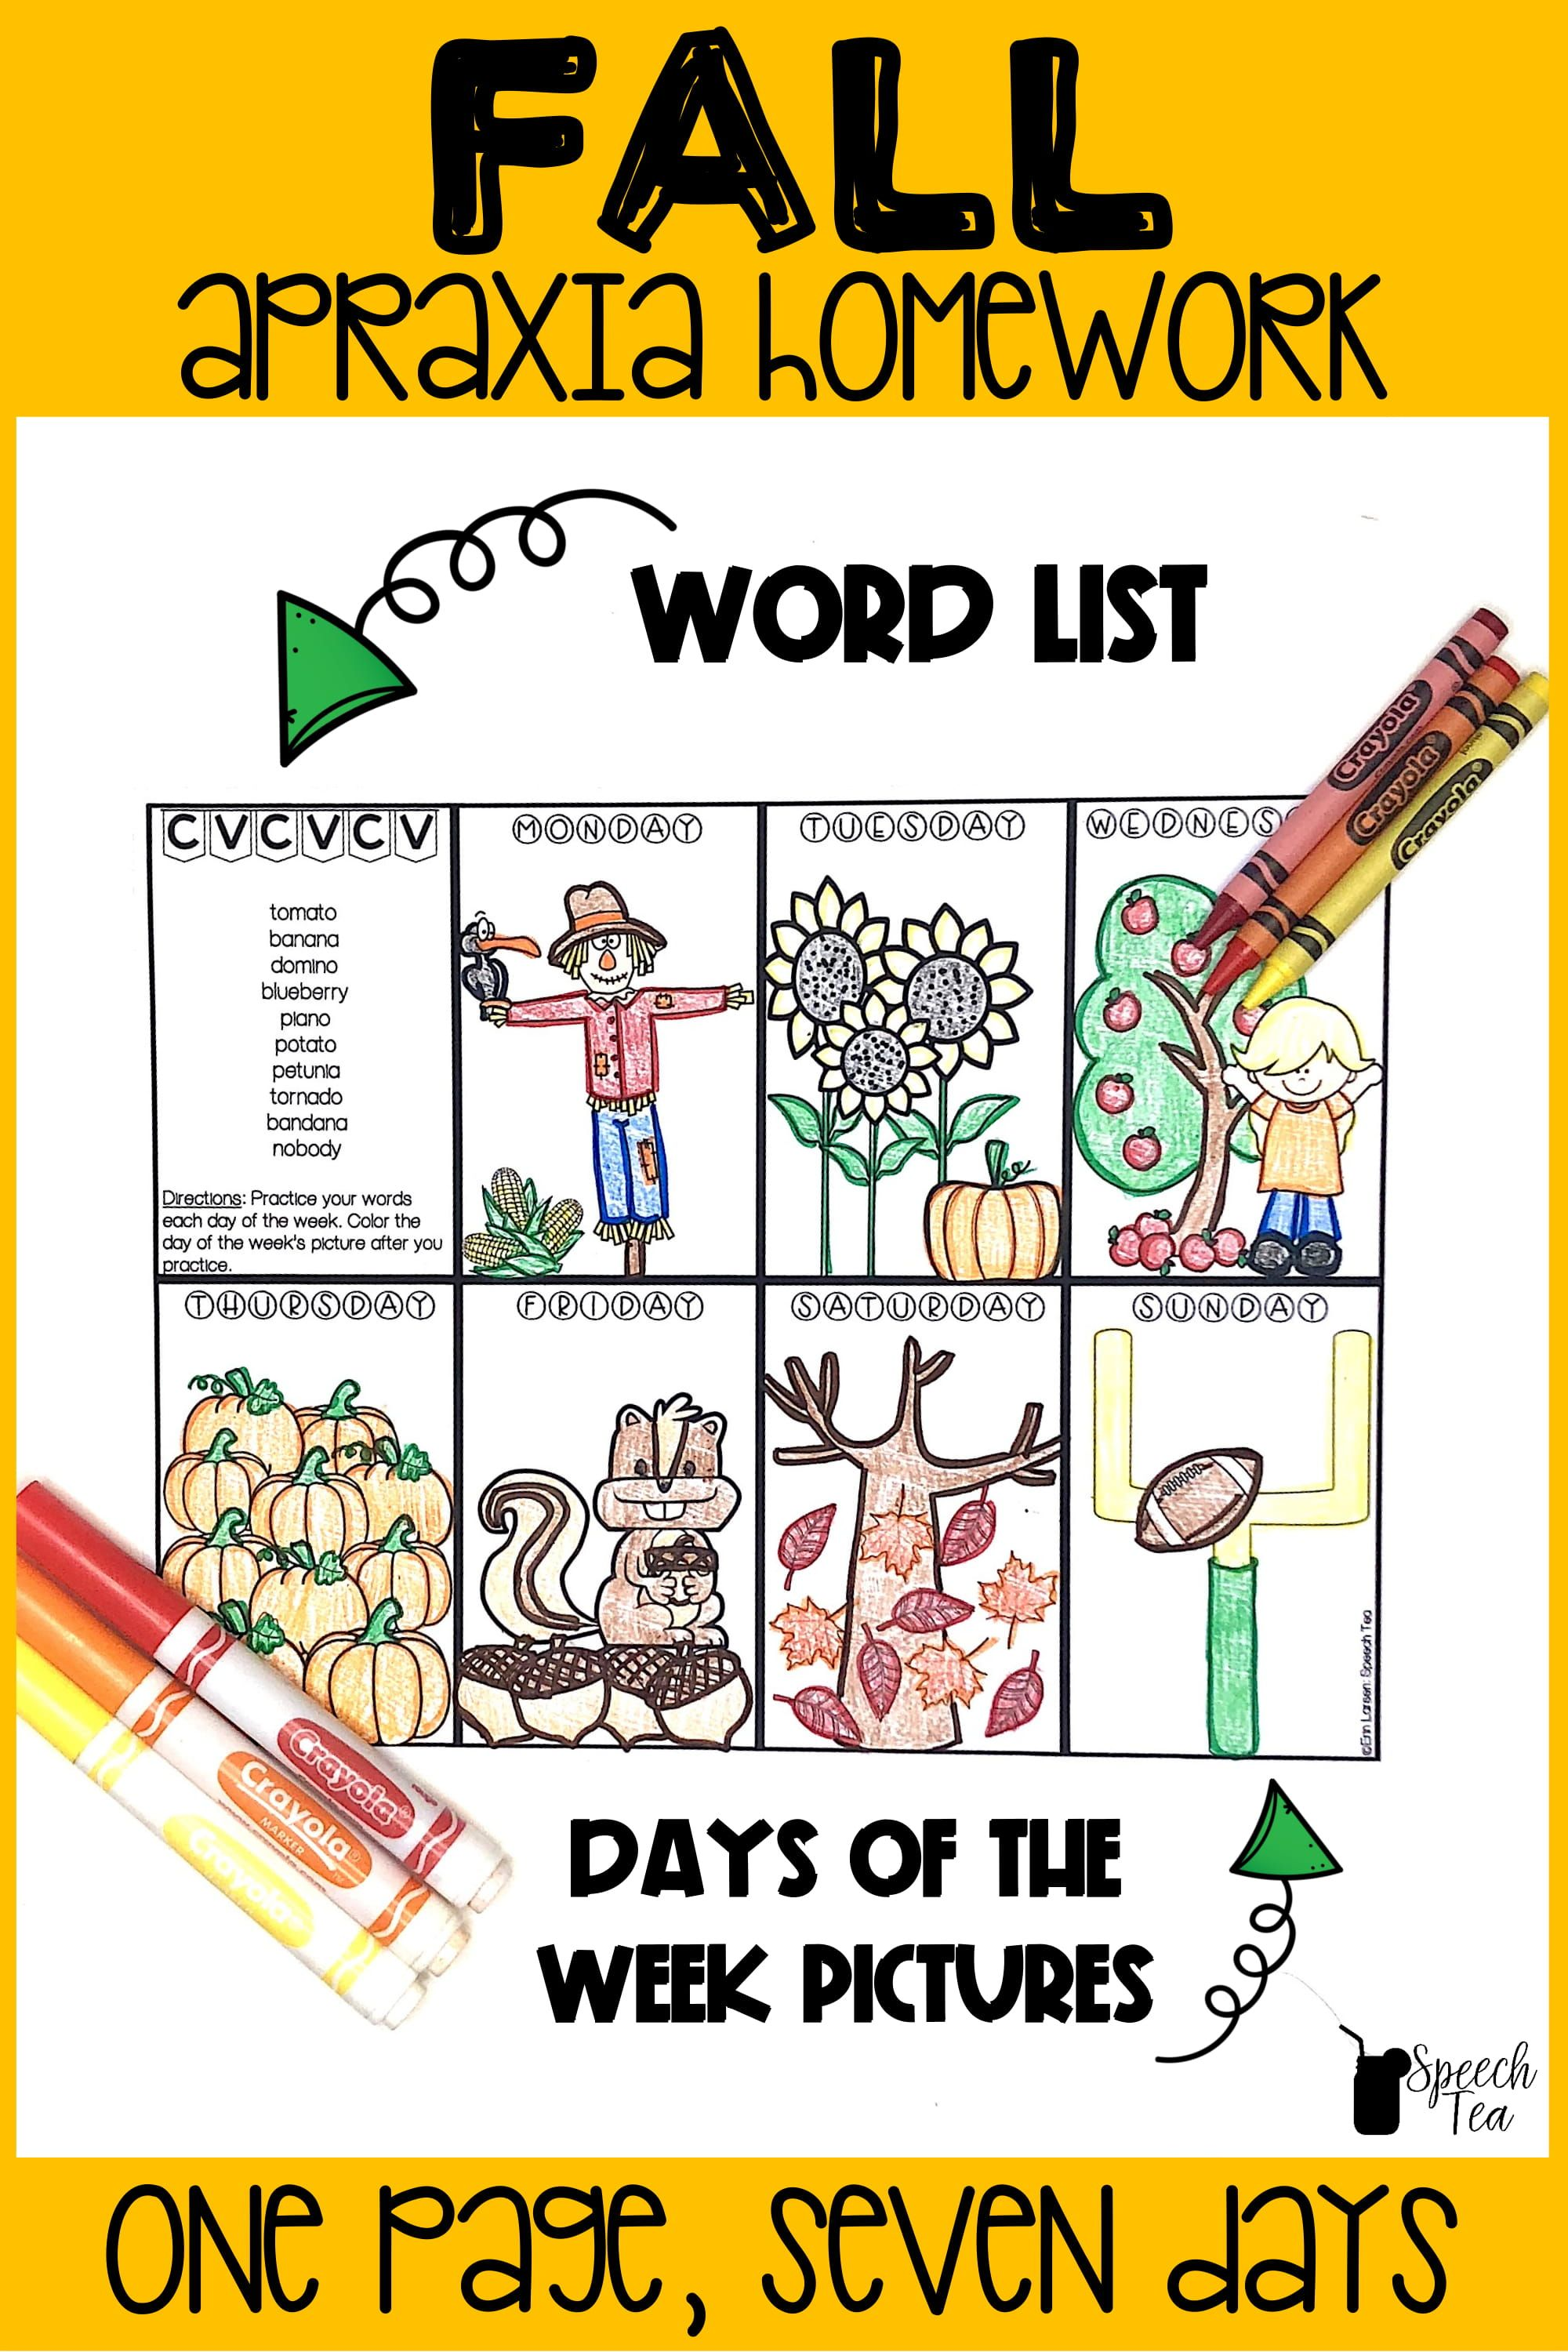 Apraxia Of Speech Homework For Fall Word List Included